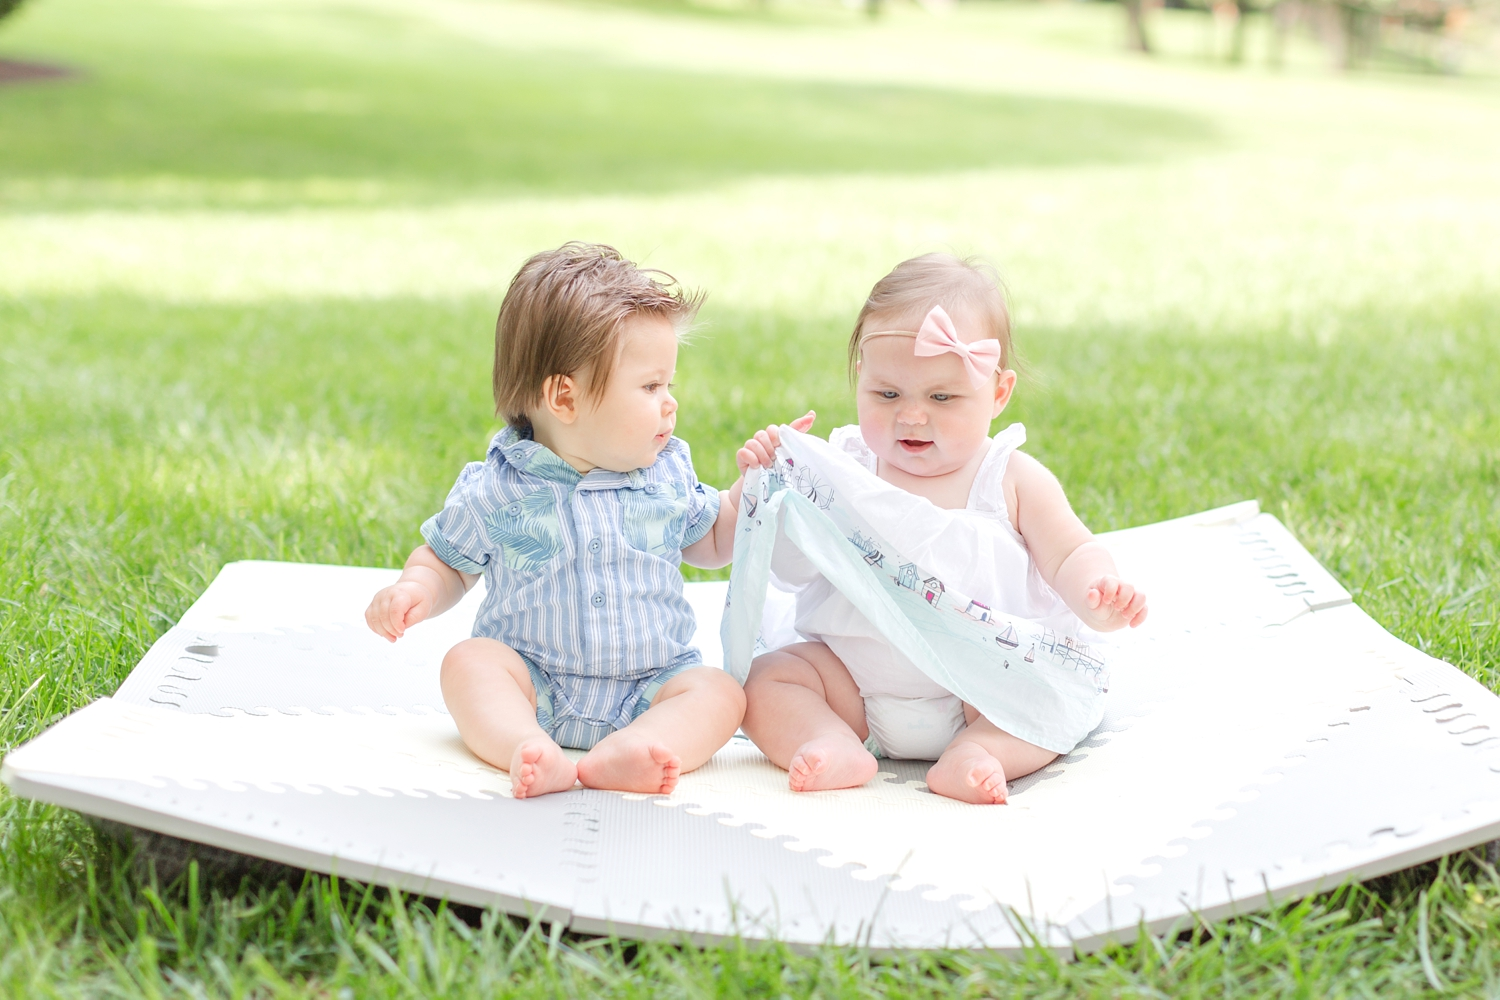 Payton & James 6 Months Old-7_towson-maryland-family-photographer-anna-grace-photography-photo.jpg